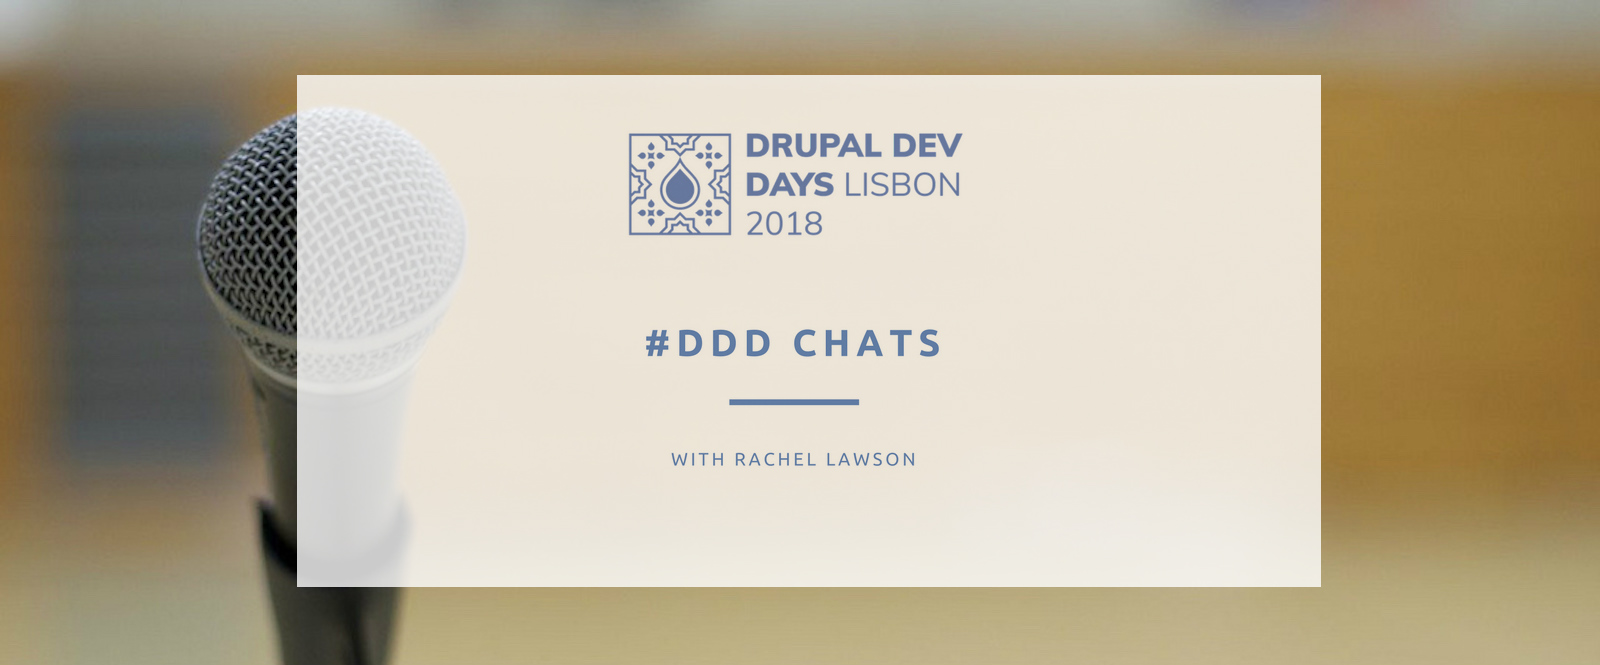 ddd chat with Rachel Lawson